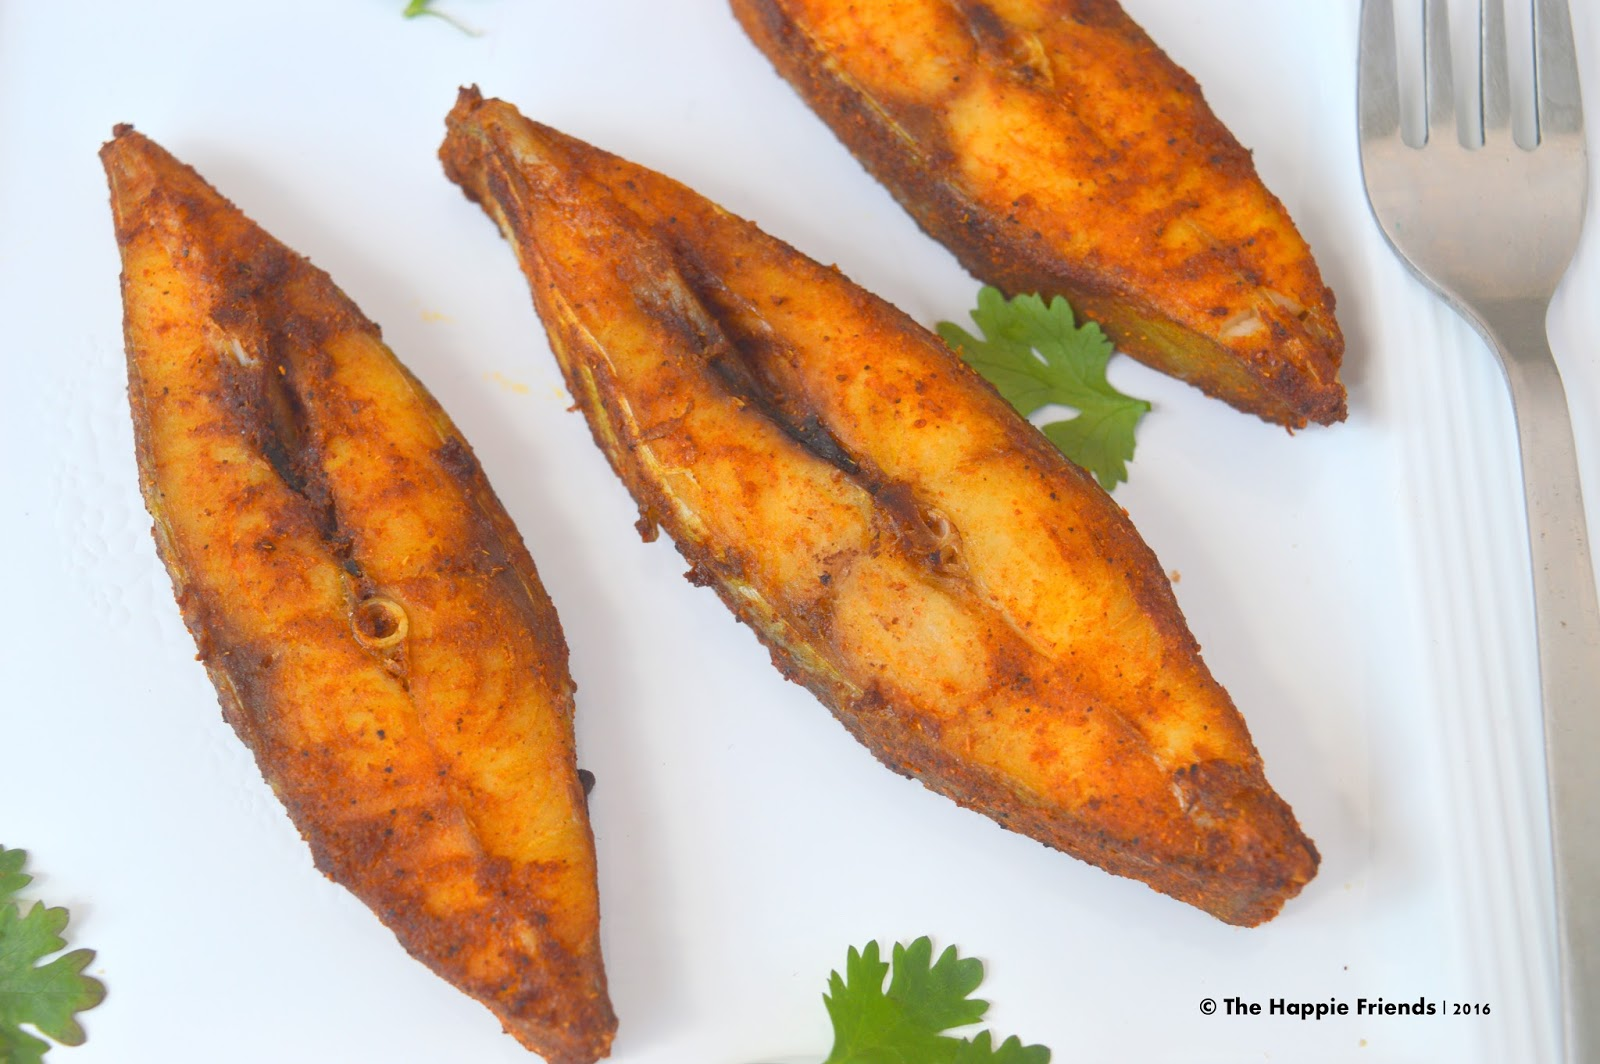 Fish fry in oven baked fish crisp healthy appetizer for Oven baked fish recipes